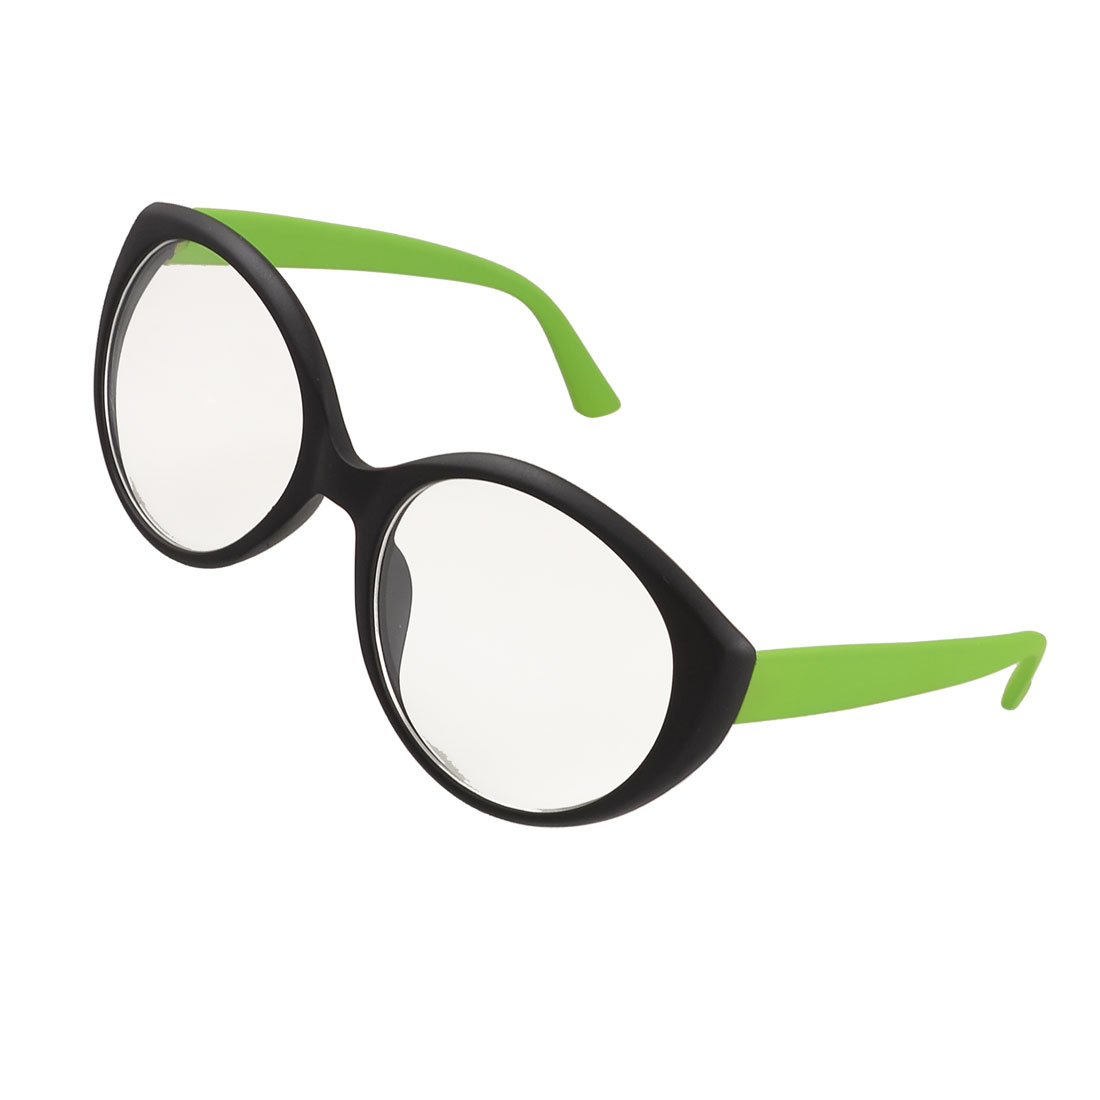 Round Plano Lens Green Black Plastic Temples Rimmed Spectacles for Women